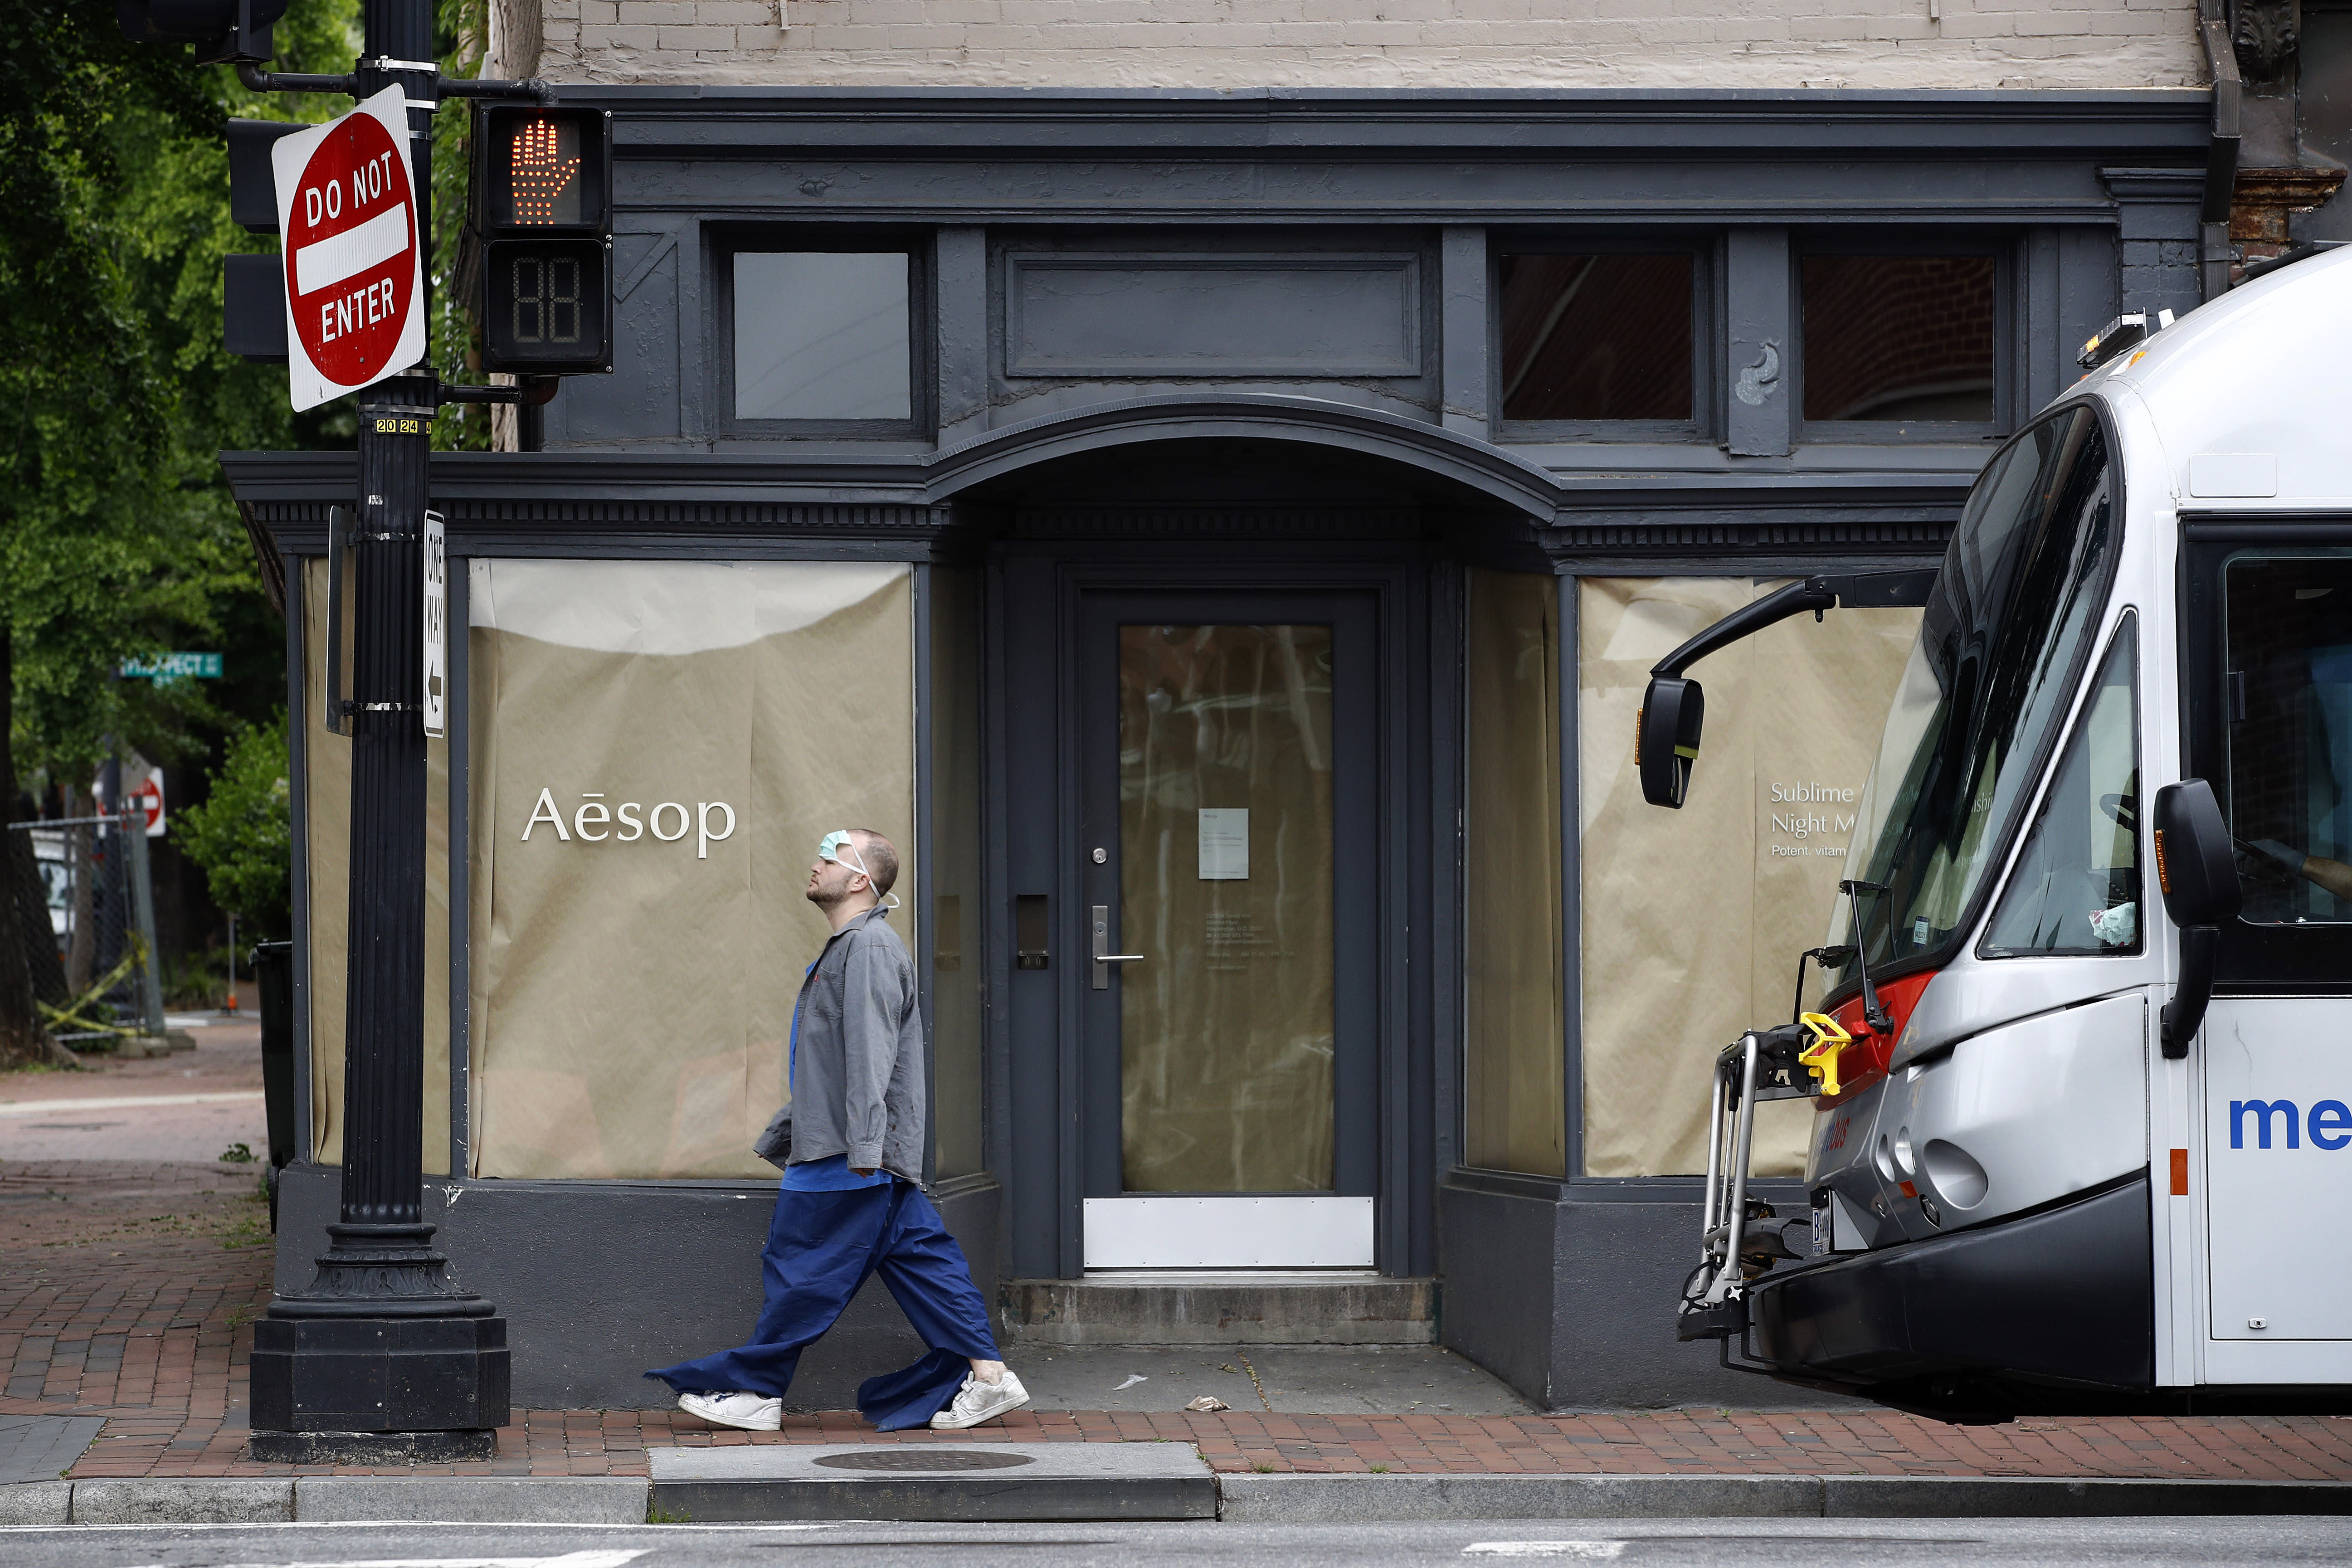 A man wears a face mask to protect against the spread of the new coronavirus on his forehead as he walks past a closed store in the Georgetown neighborhood of Washington, Thursday, May 21, 2020. The District of Columbia is under a stay-home order for all residents in an effort to slow the spread of the new coronavirus. (AP Photo/Patrick Semansky)